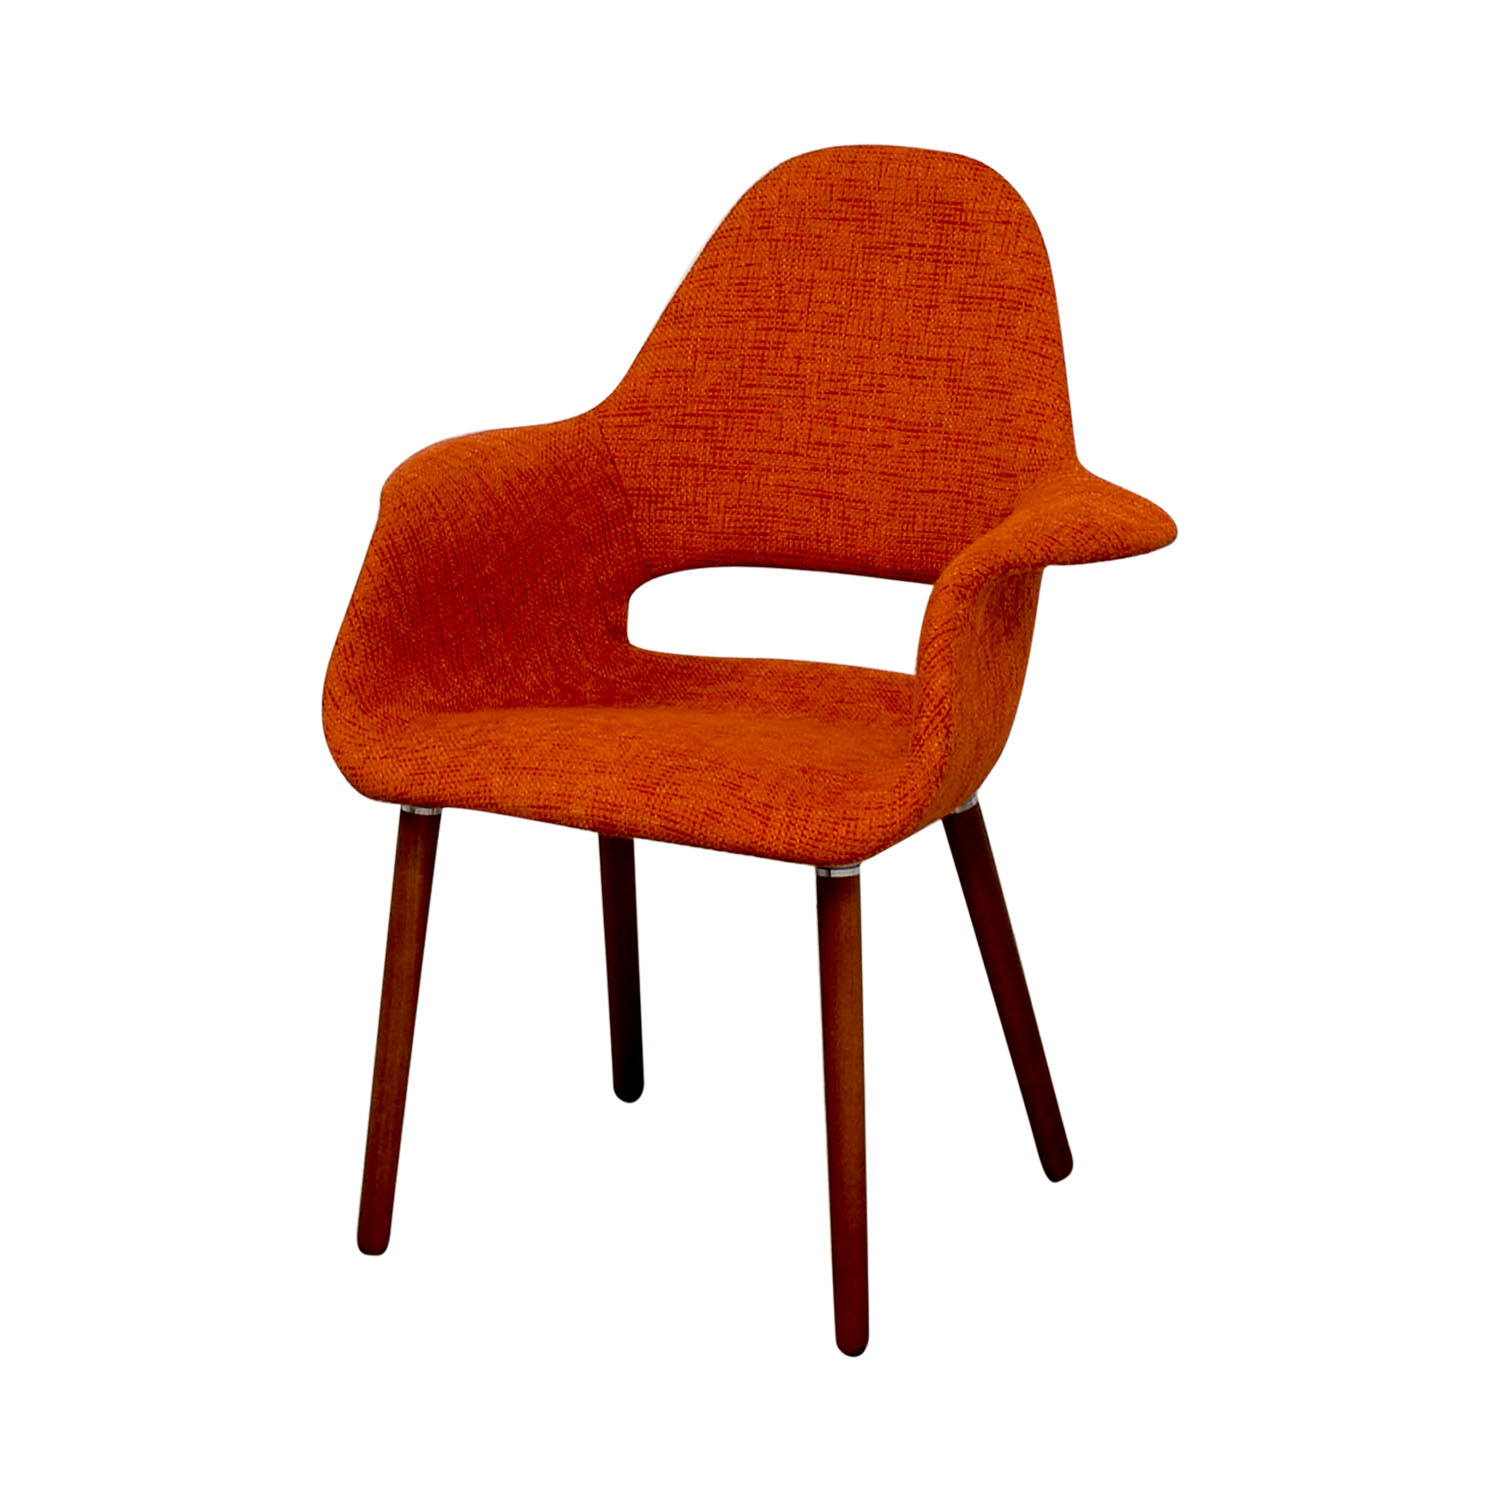 Artrio Orange Upholstered Armchair / Chairs